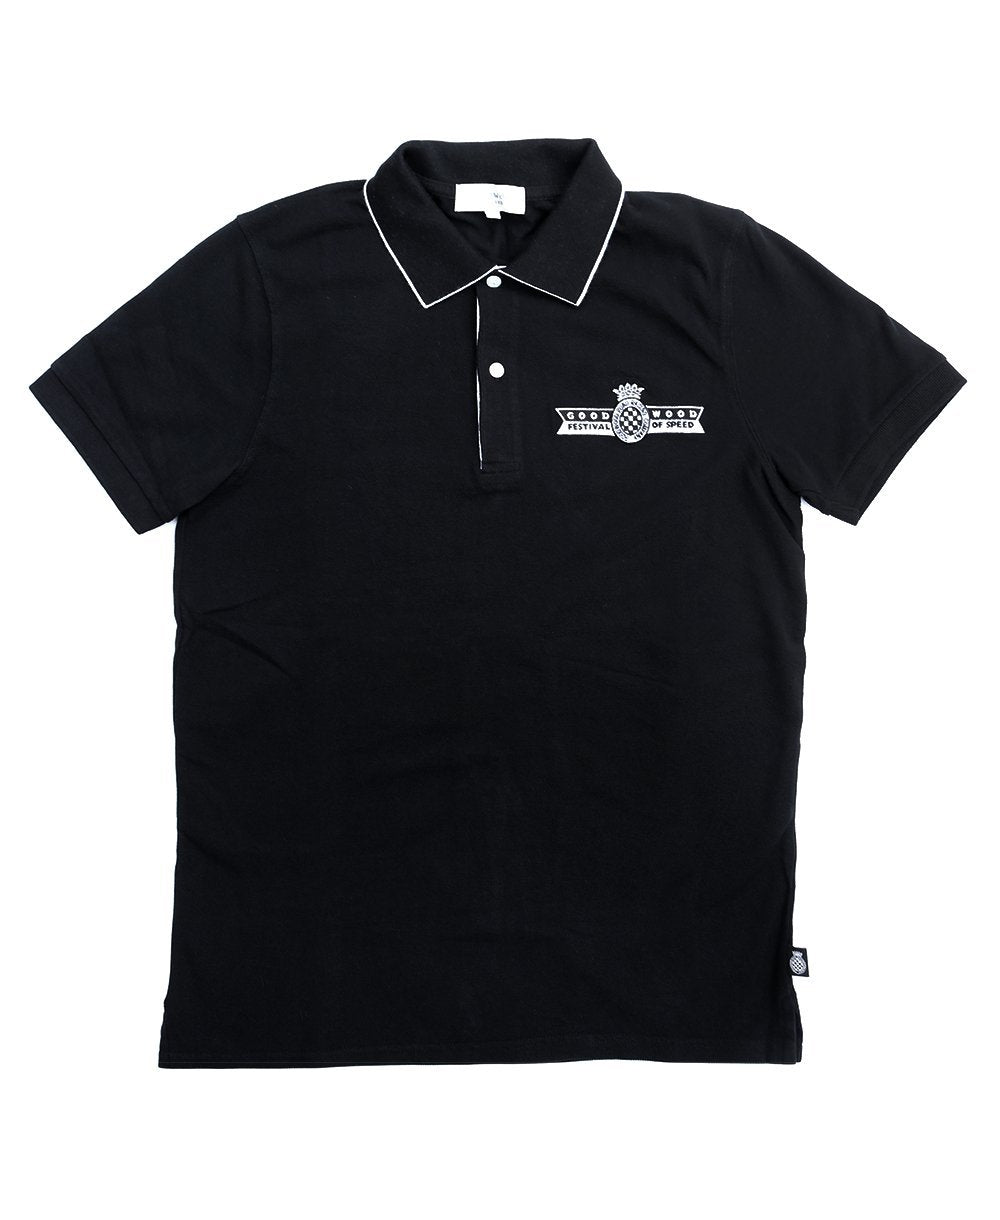 Goodwood Festival Of Speed Cotton Mens Black Polo Shirt